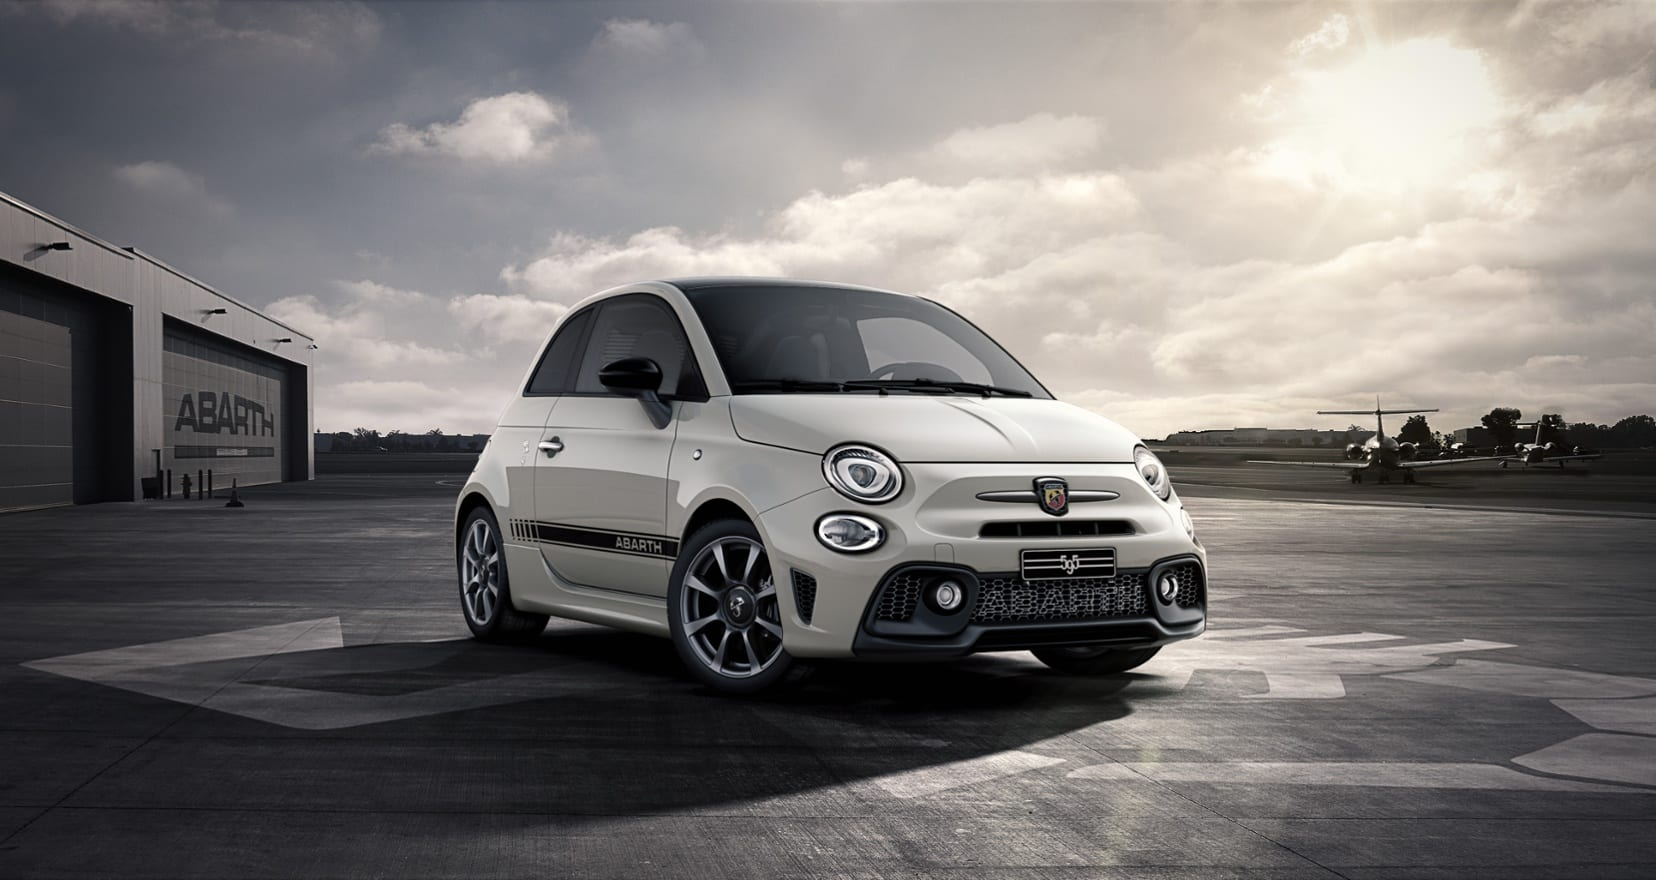 Abarth 595 Wit - voorkant